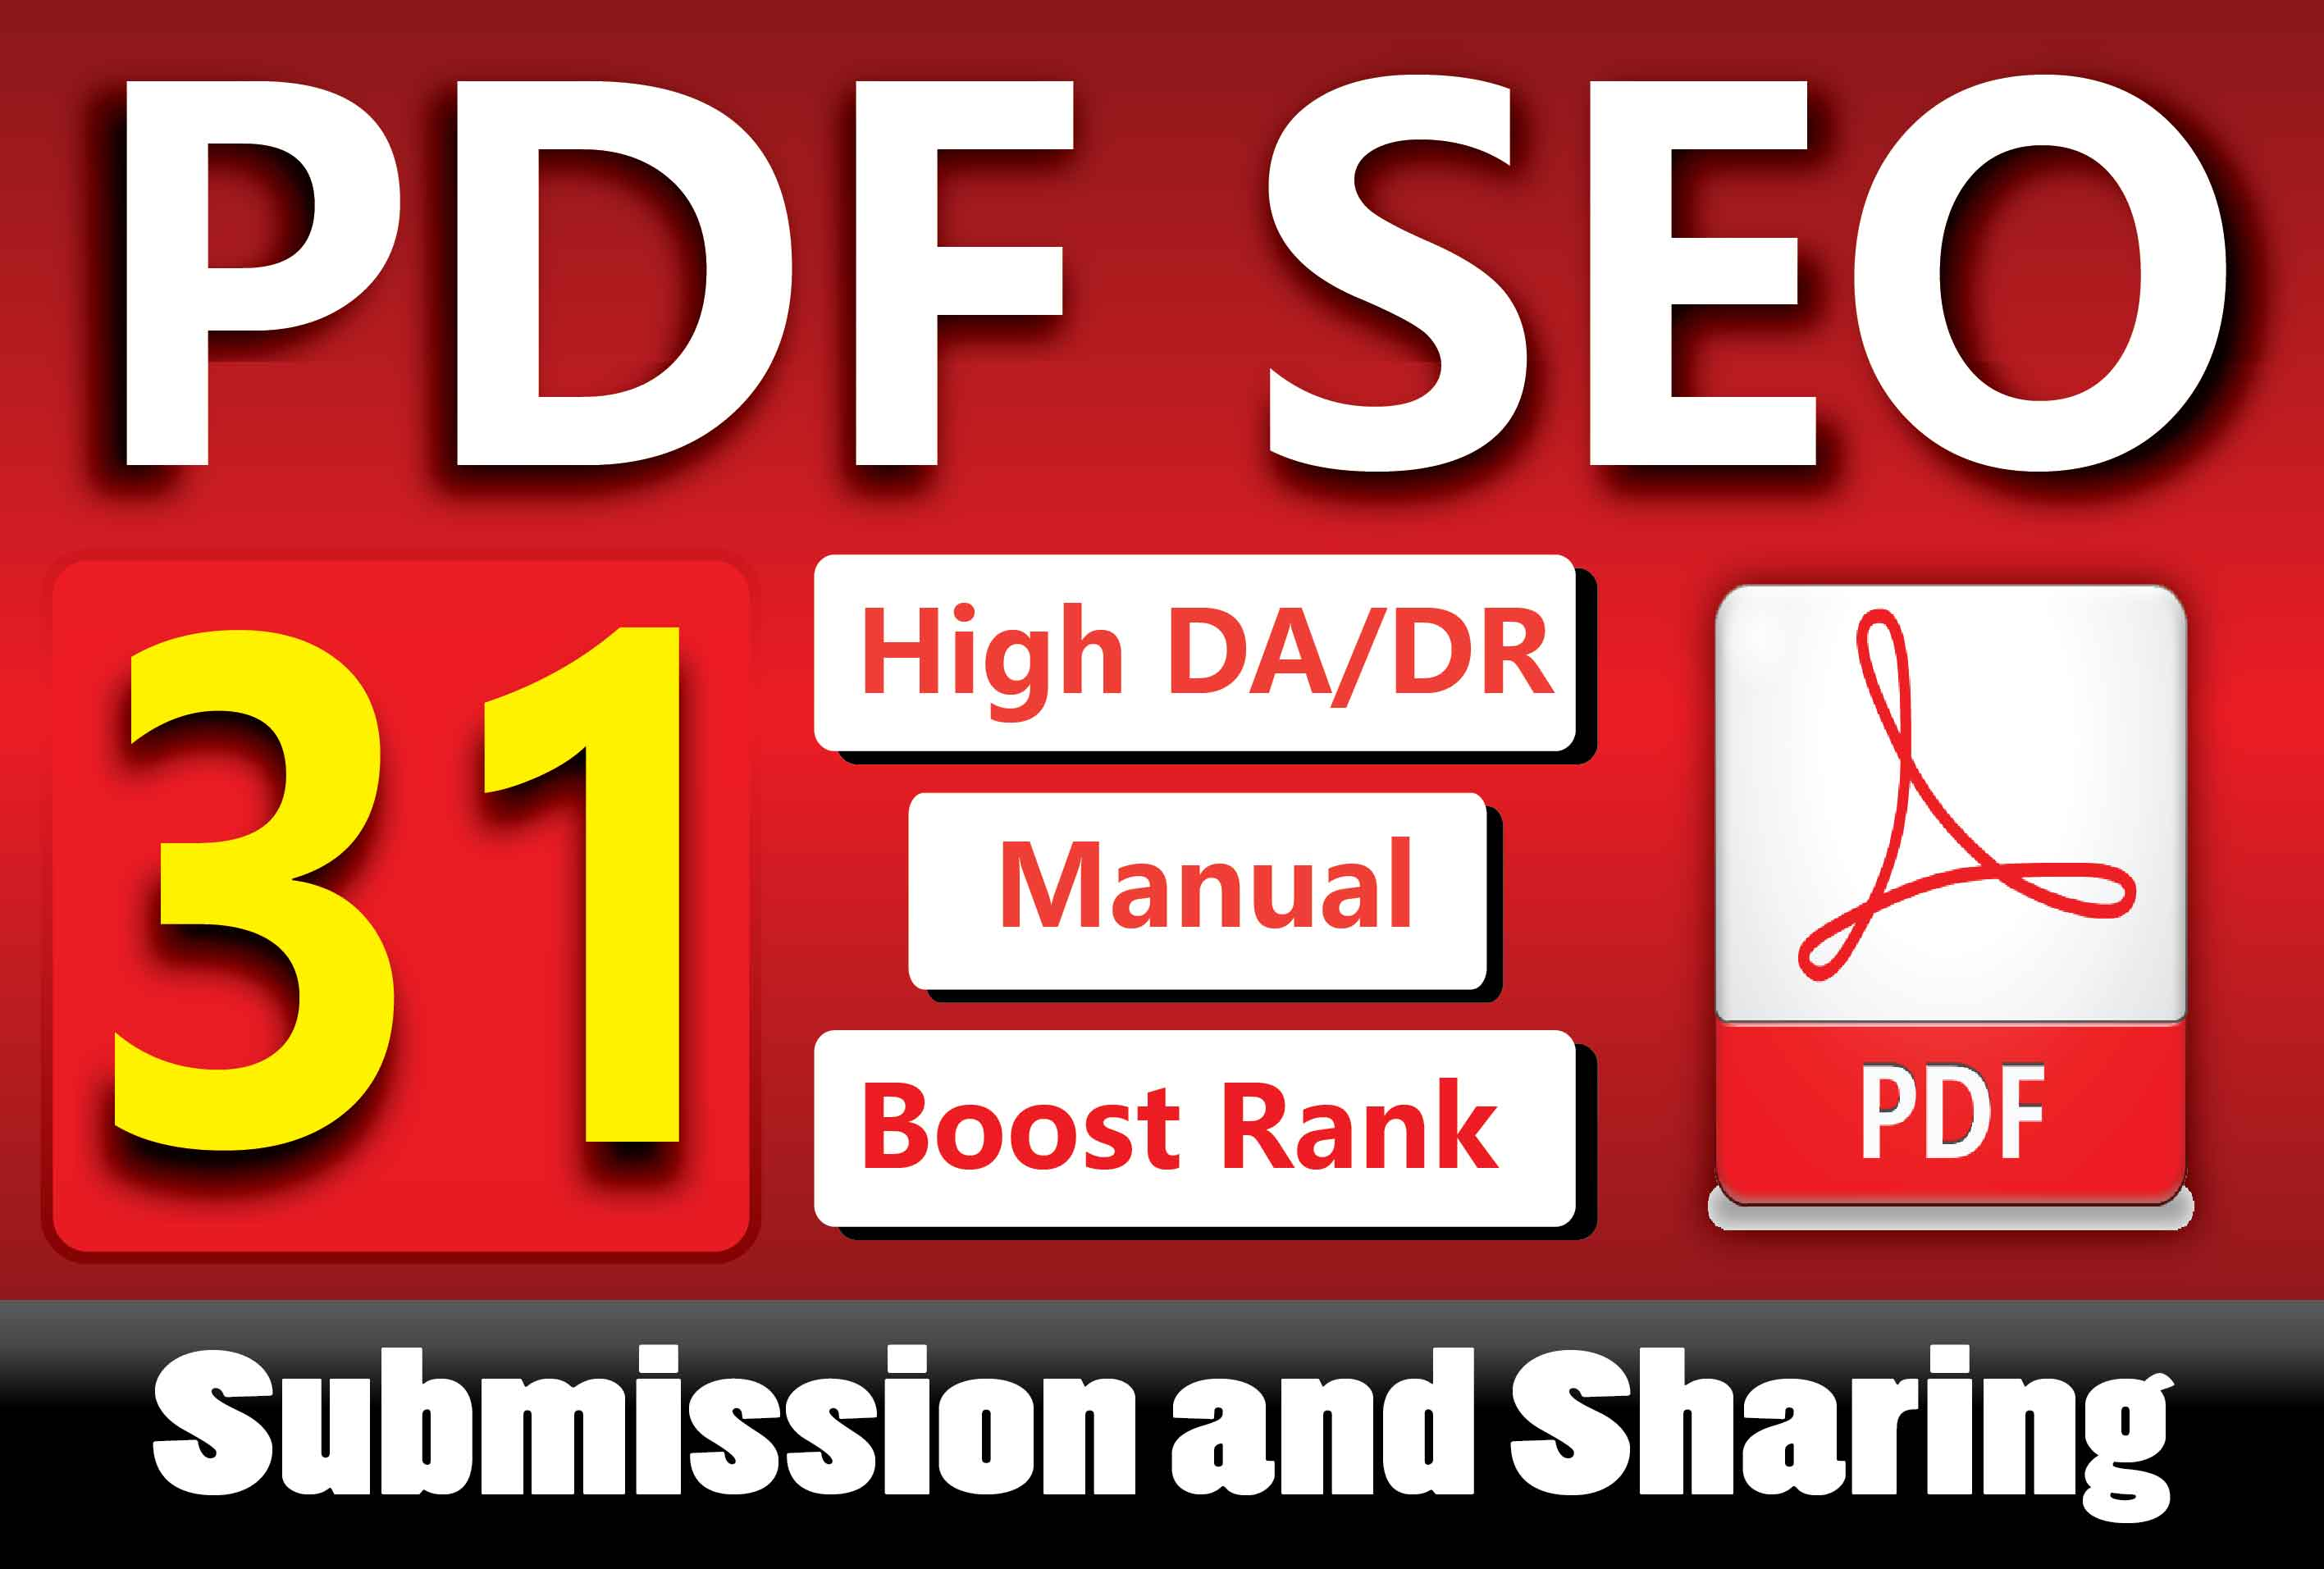 Manually 31 PDF Submission or Sharing to High Authority Sites for Boosting Google Ranking